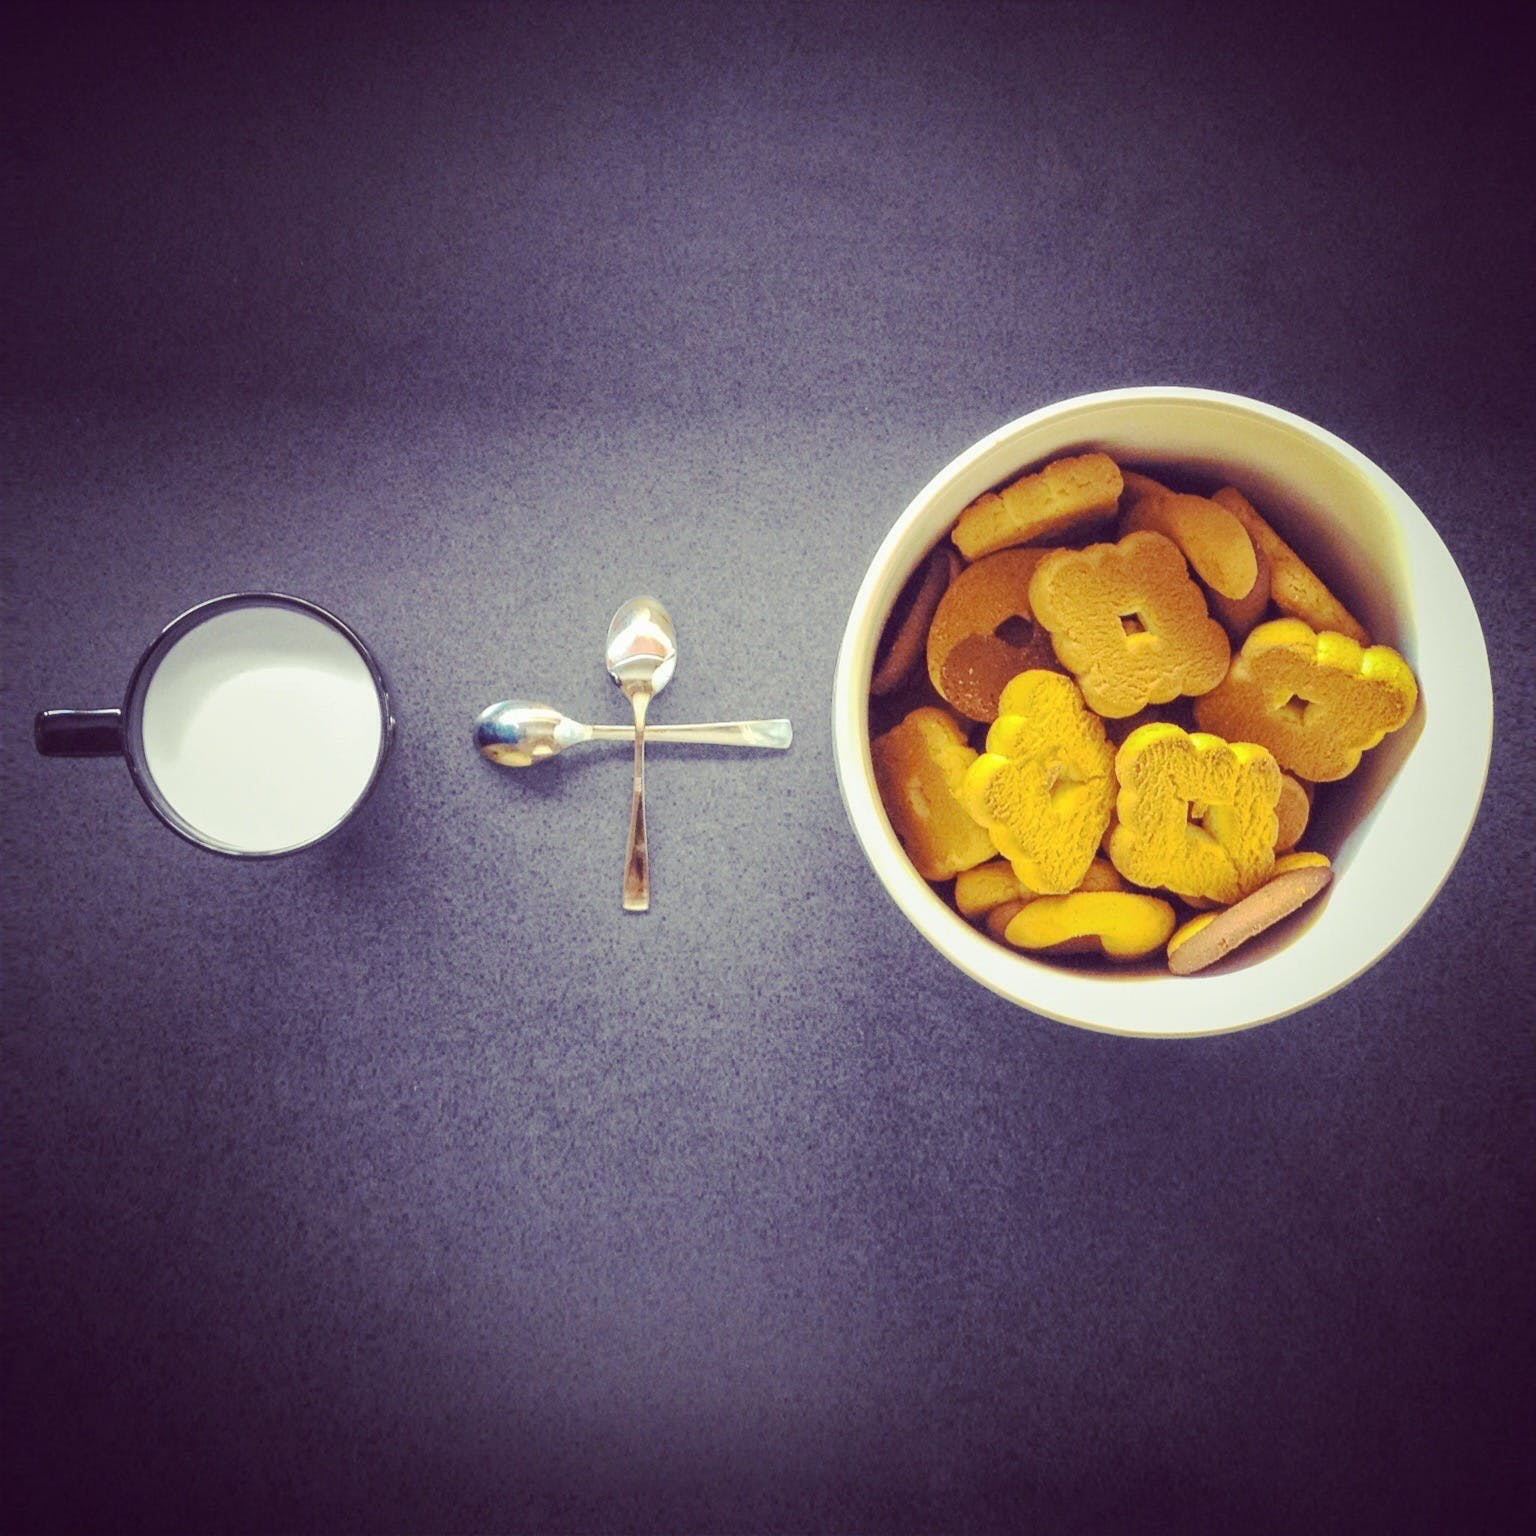 Crackers in Round White Ceramic Cup Near Two Stainless Steel Spoons and Black Ceramic Mug